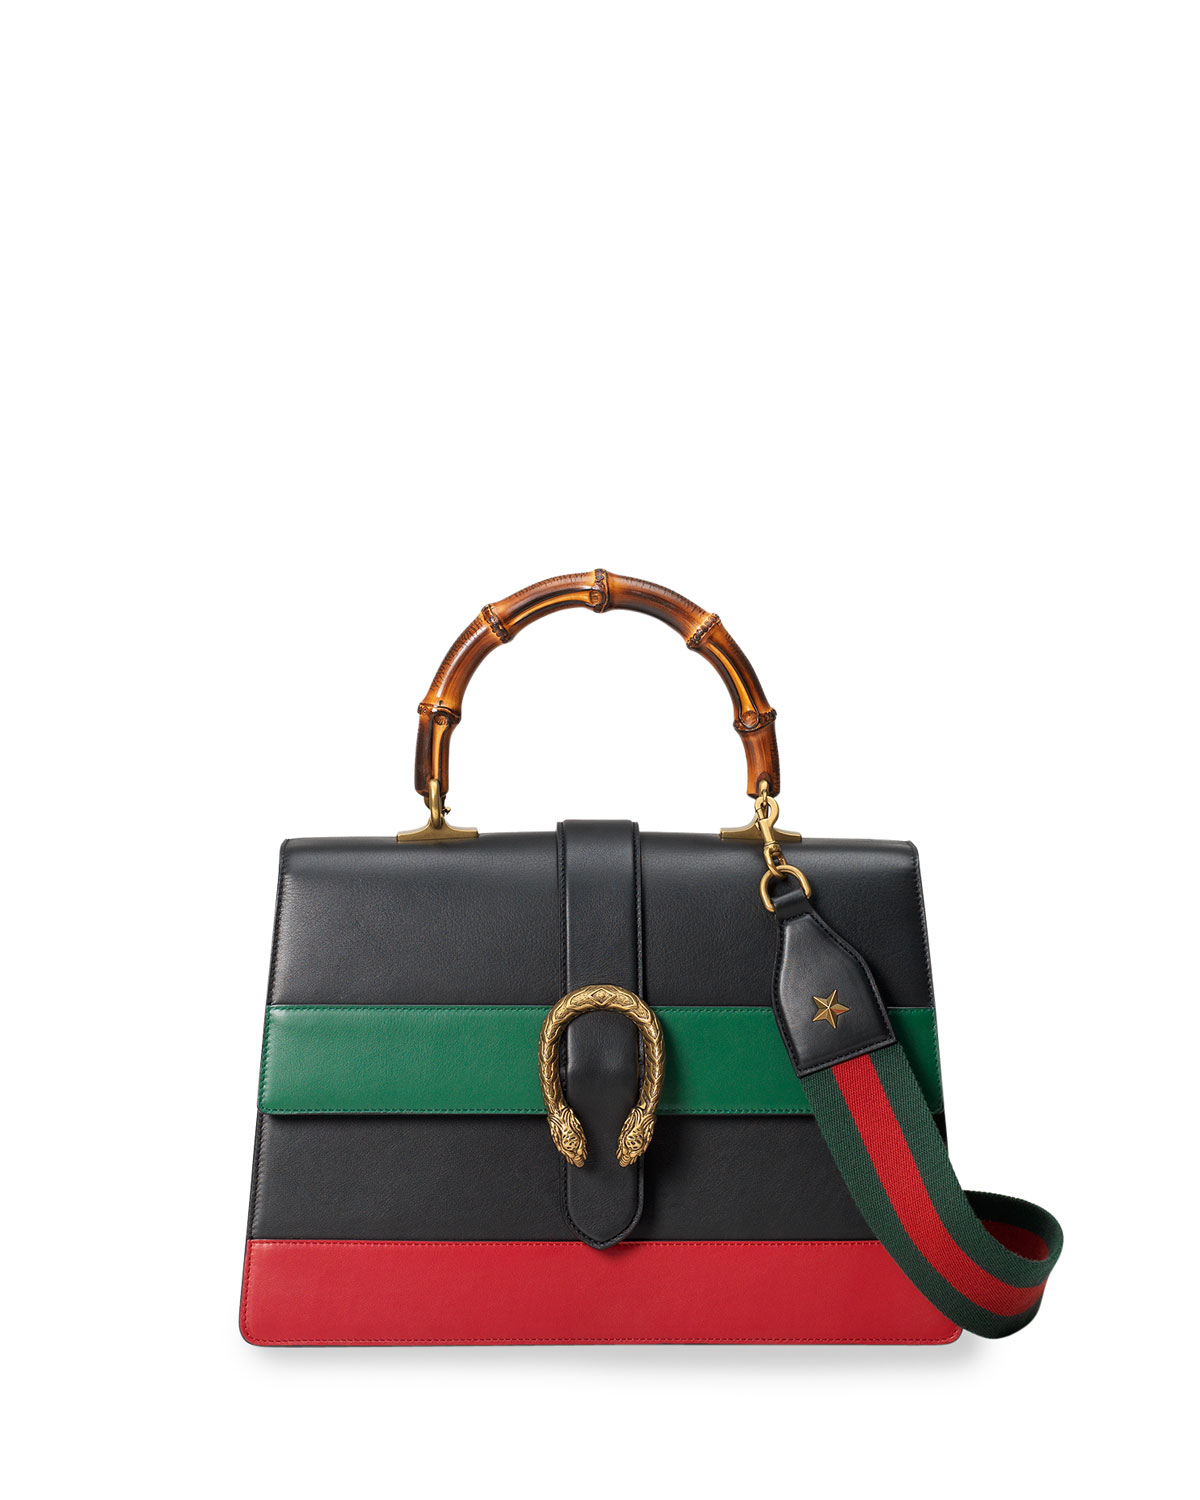 Gucci Dionysus Striped Bamboo Top,Handle Bag, Black/Green/Red